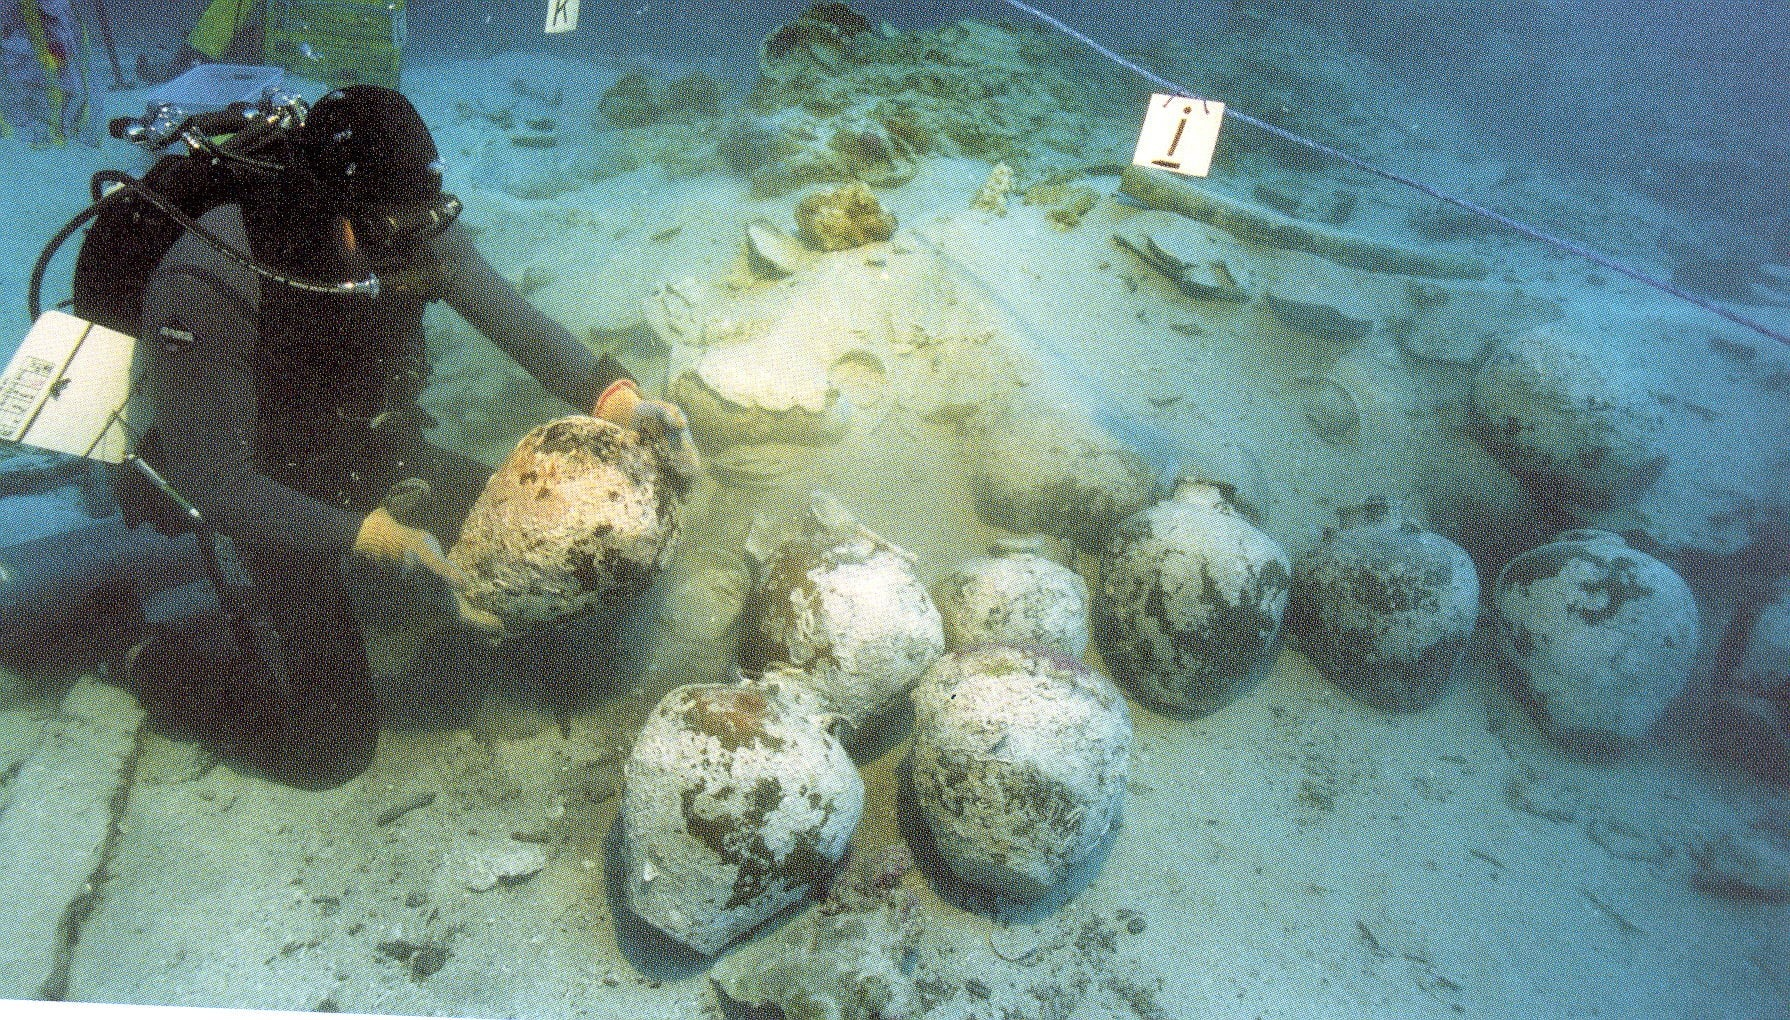 Storage jars from the Lena Shoal shipwreck